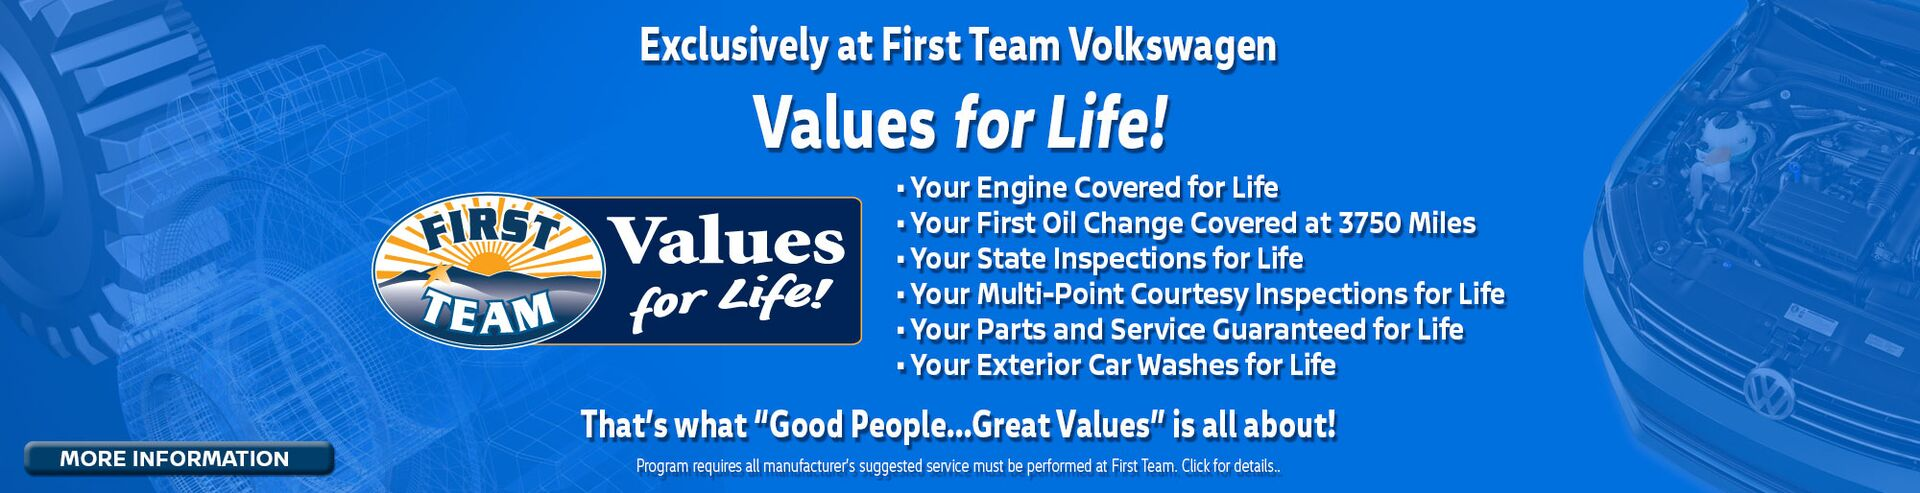 Values for Life